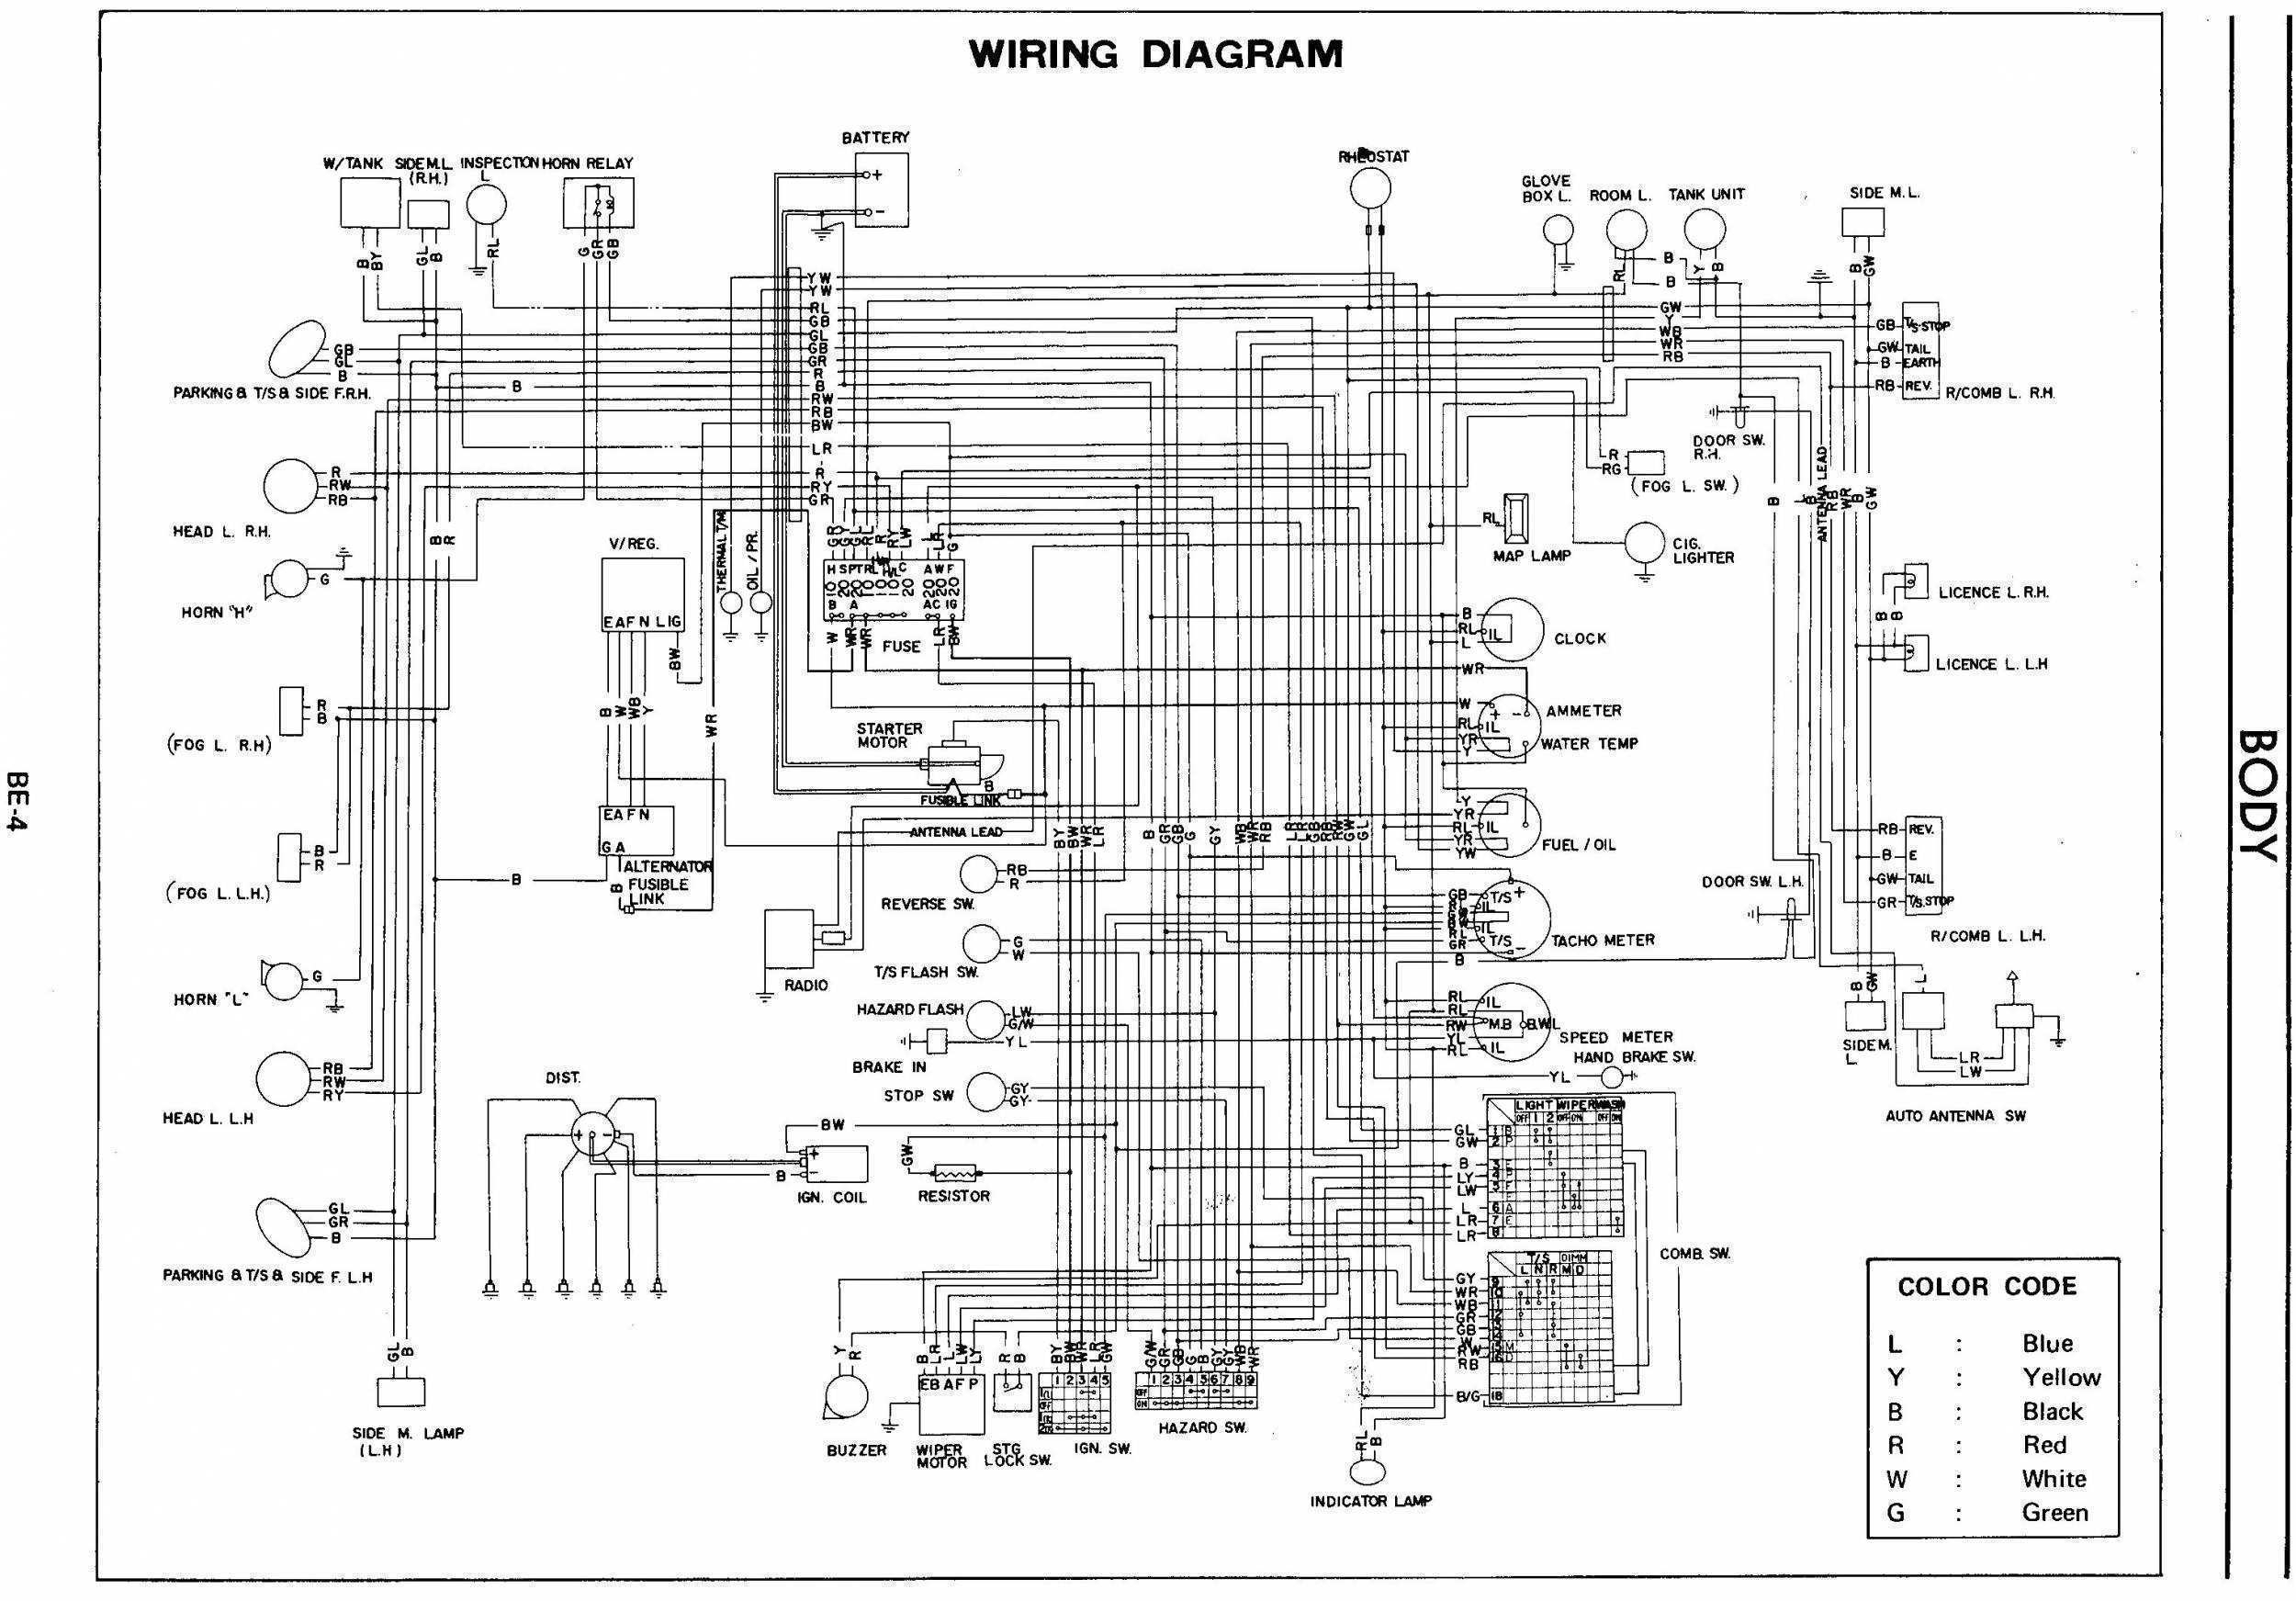 [ZTBE_9966]  17B Mercedes Benz E Cl Wiring Diagram | Wiring Library | 1999 Mercedes Benz Wiring Diagrams |  | Wiring Library